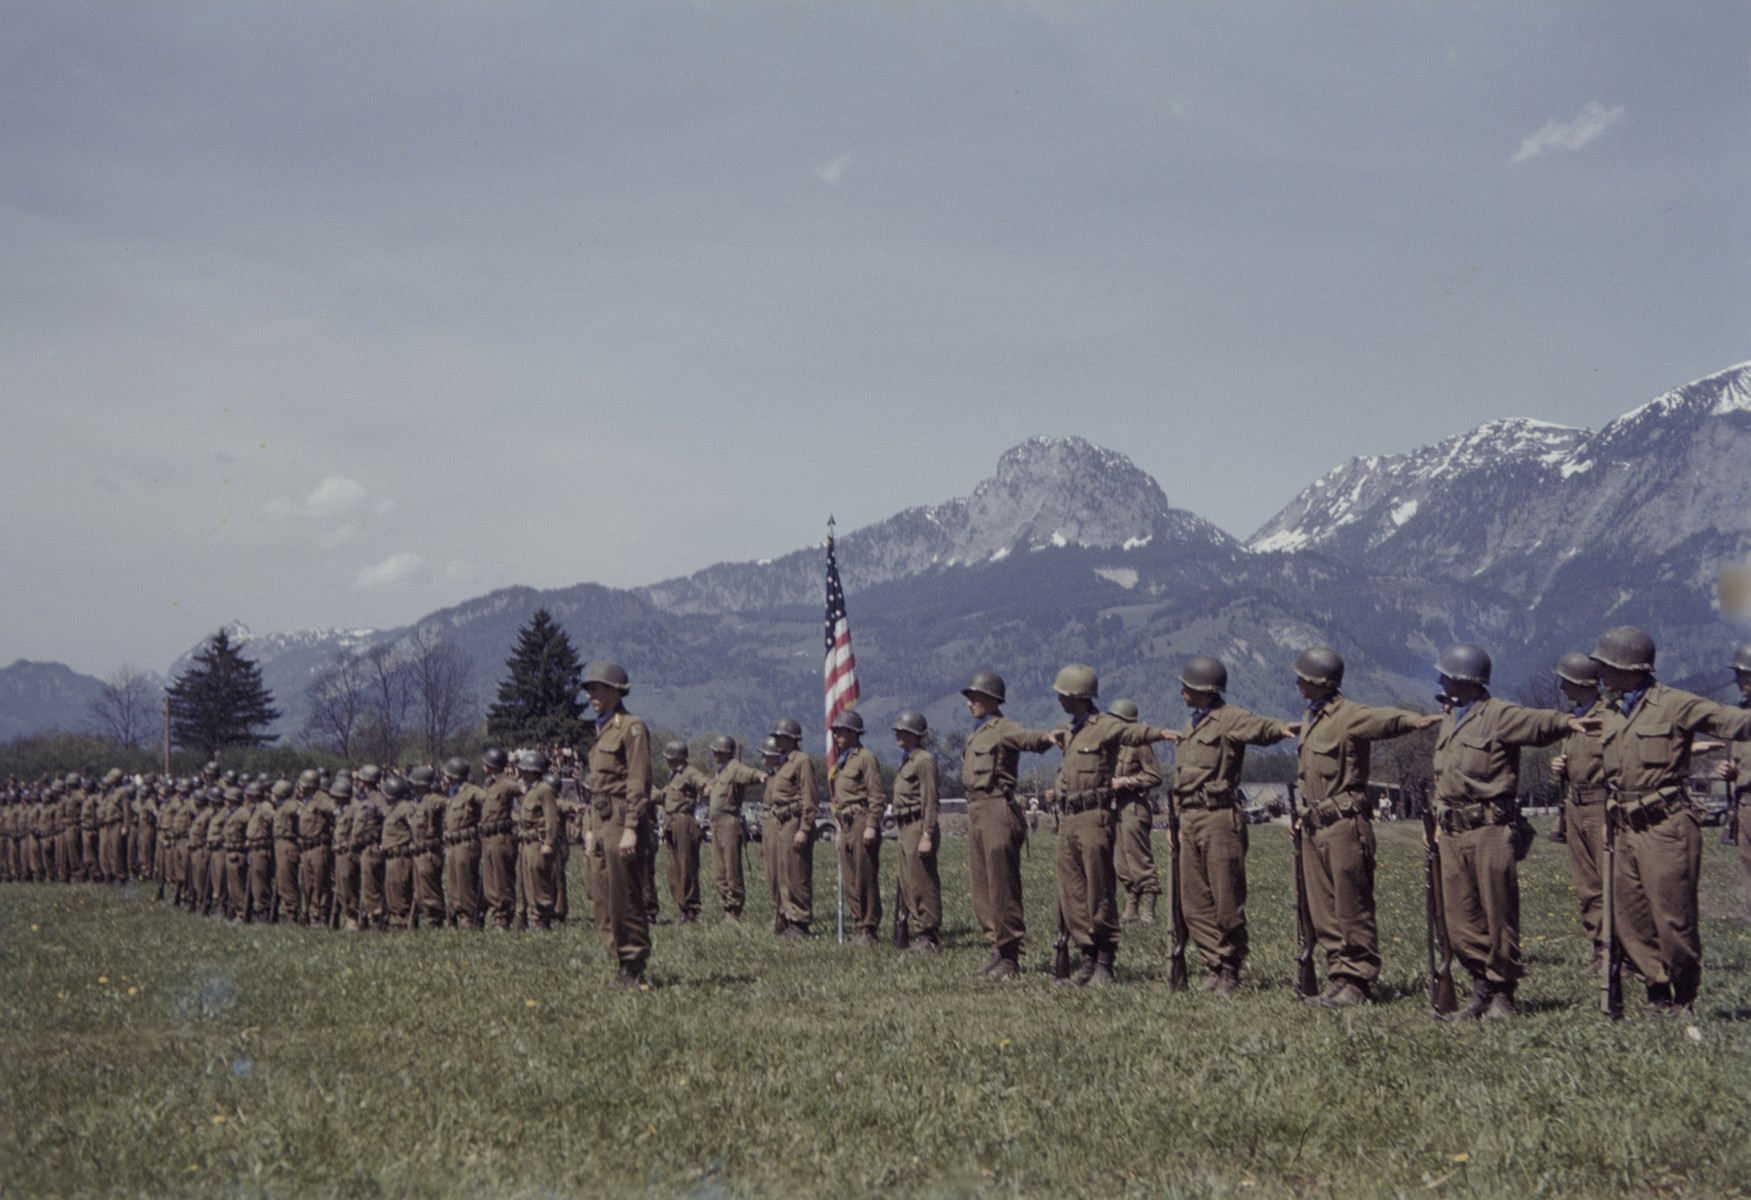 Members of the U.S. 9th Armored Division meet up with units of the Red Army near Linz, Austria.